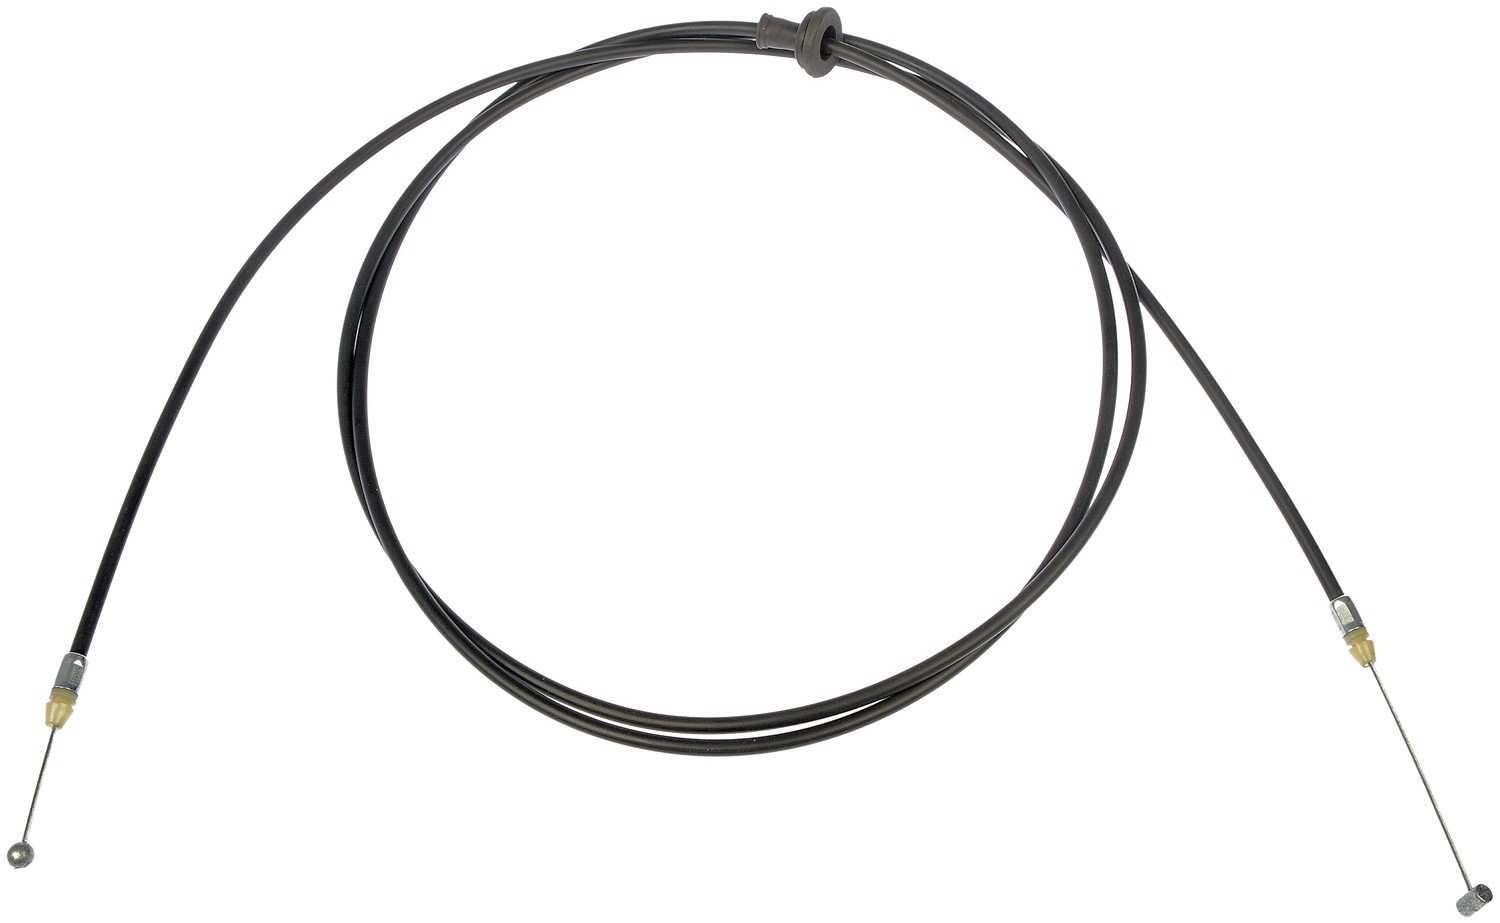 DORMAN OE SOLUTIONS - Hood Release Cable - DRE 912-012